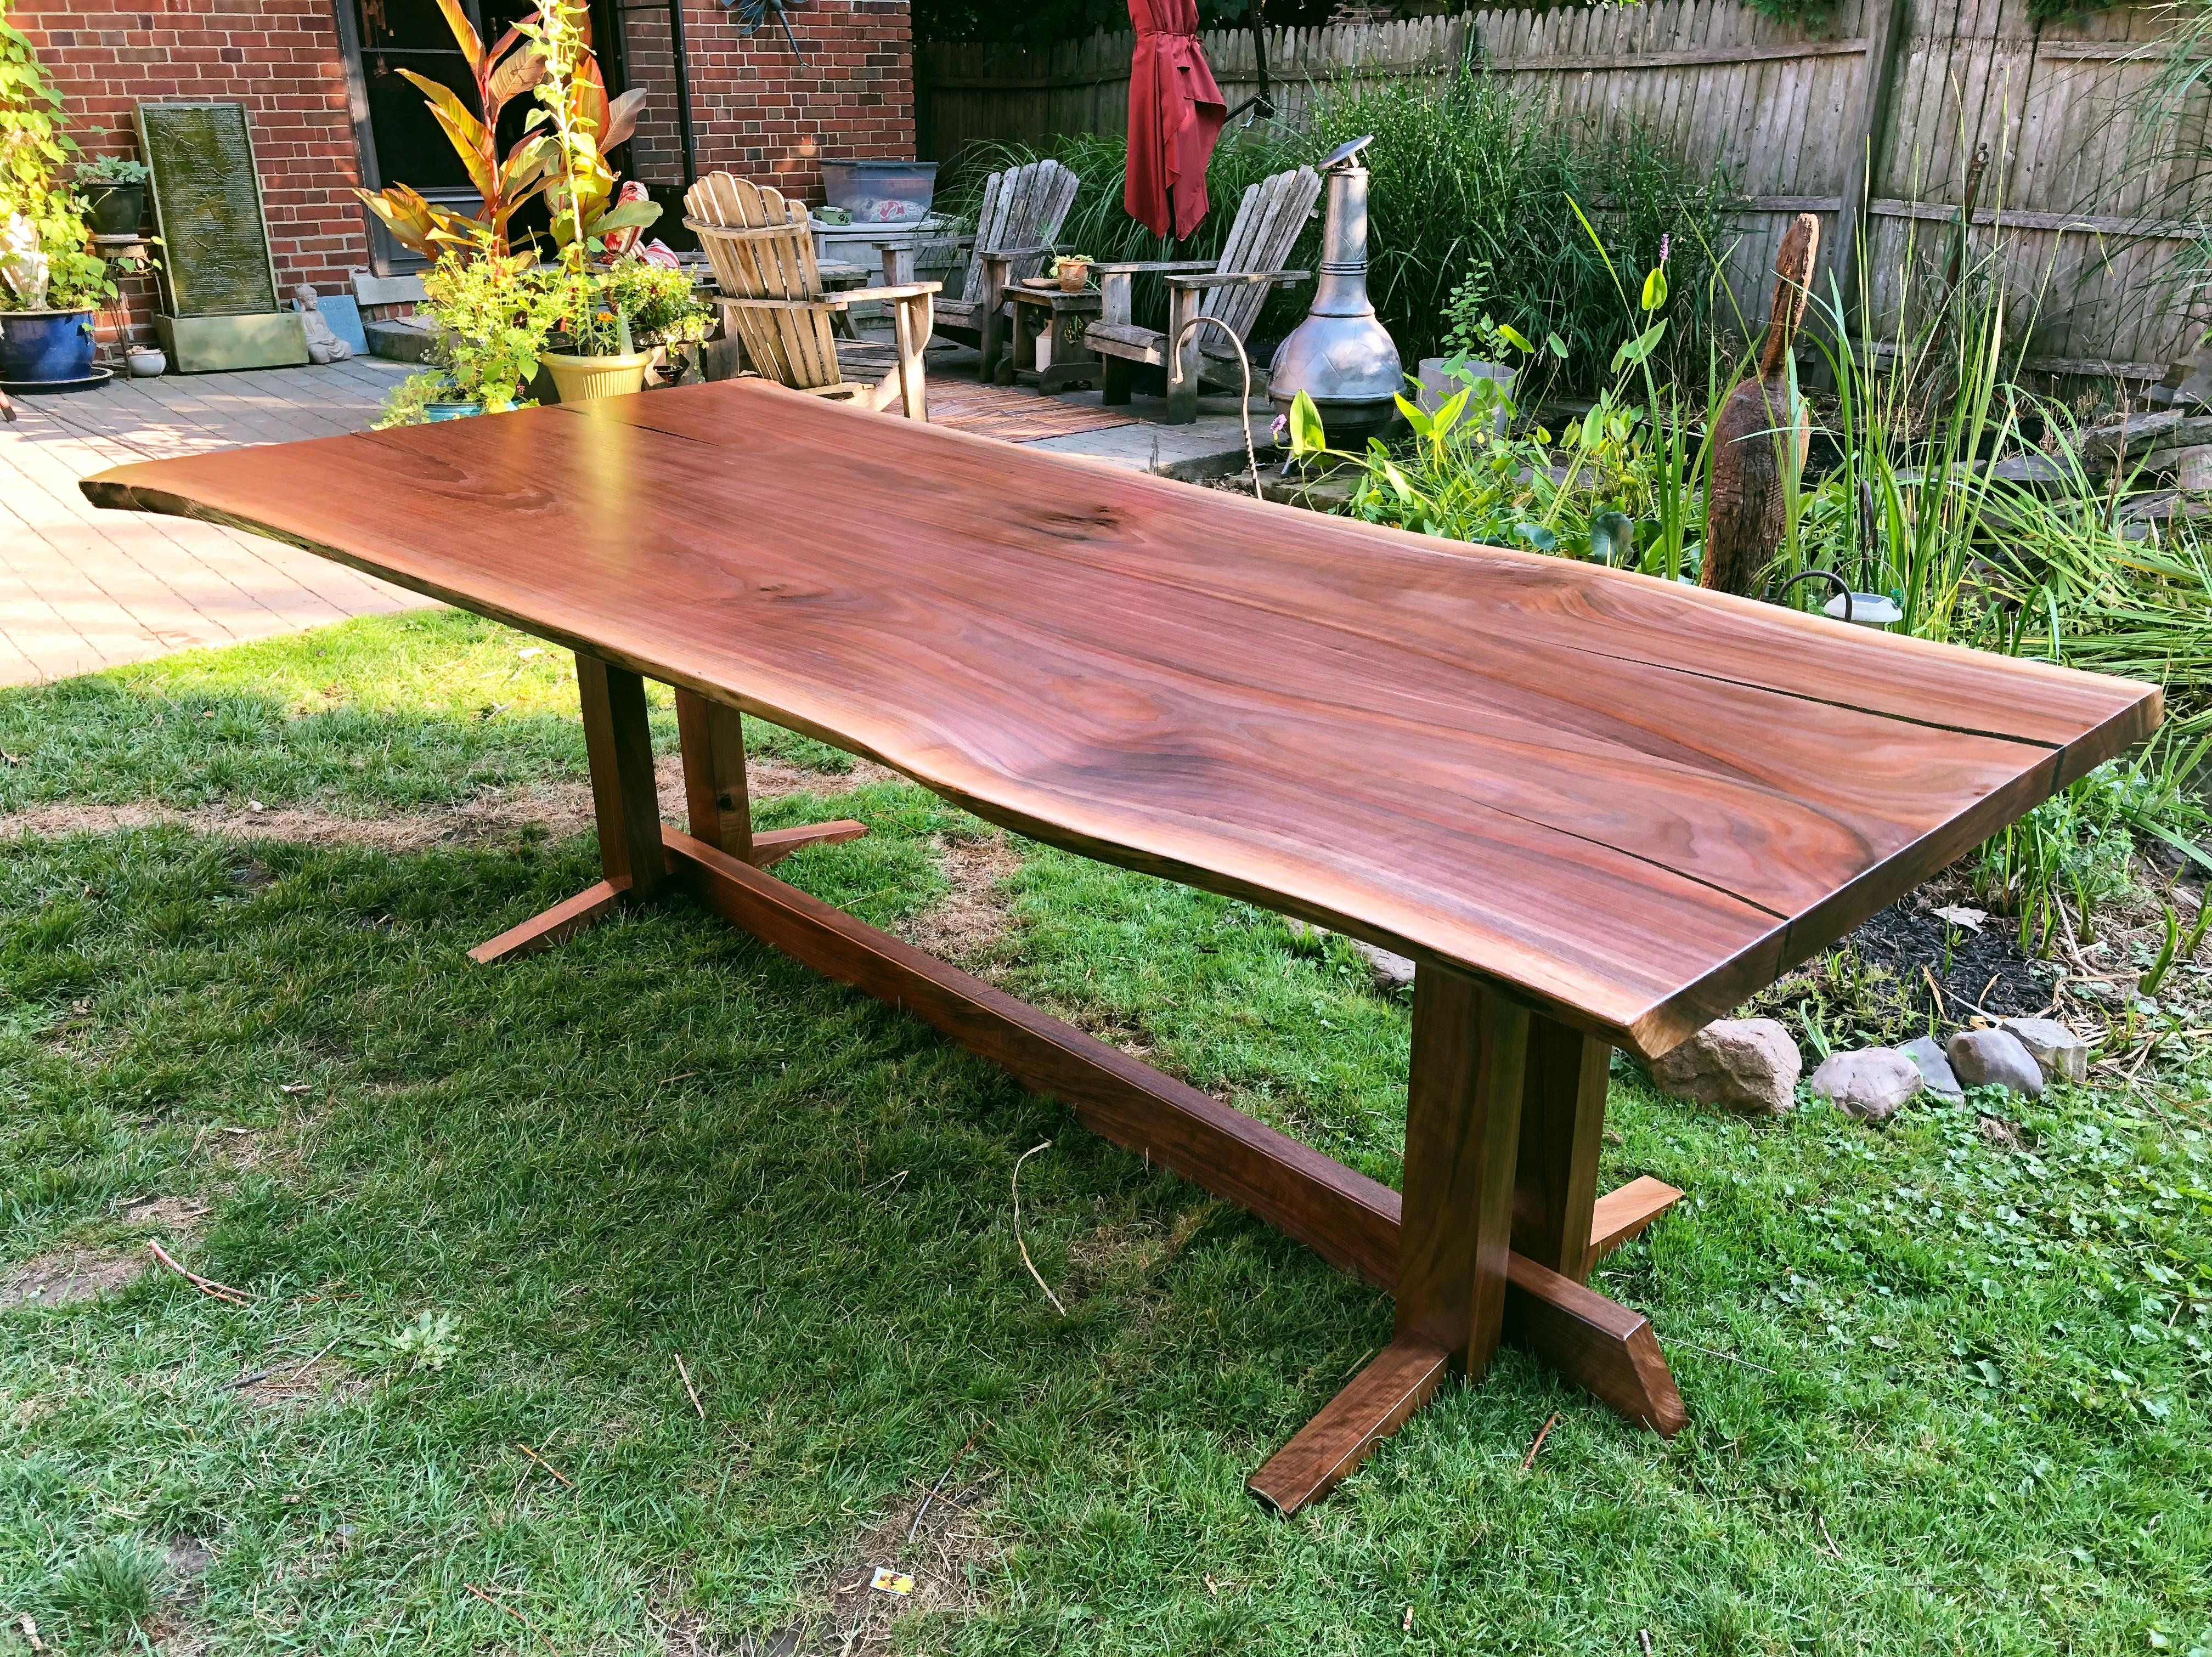 Onland Outdoor Furniture Finally Finished Making This Nakashima Style Walnut Dining Table